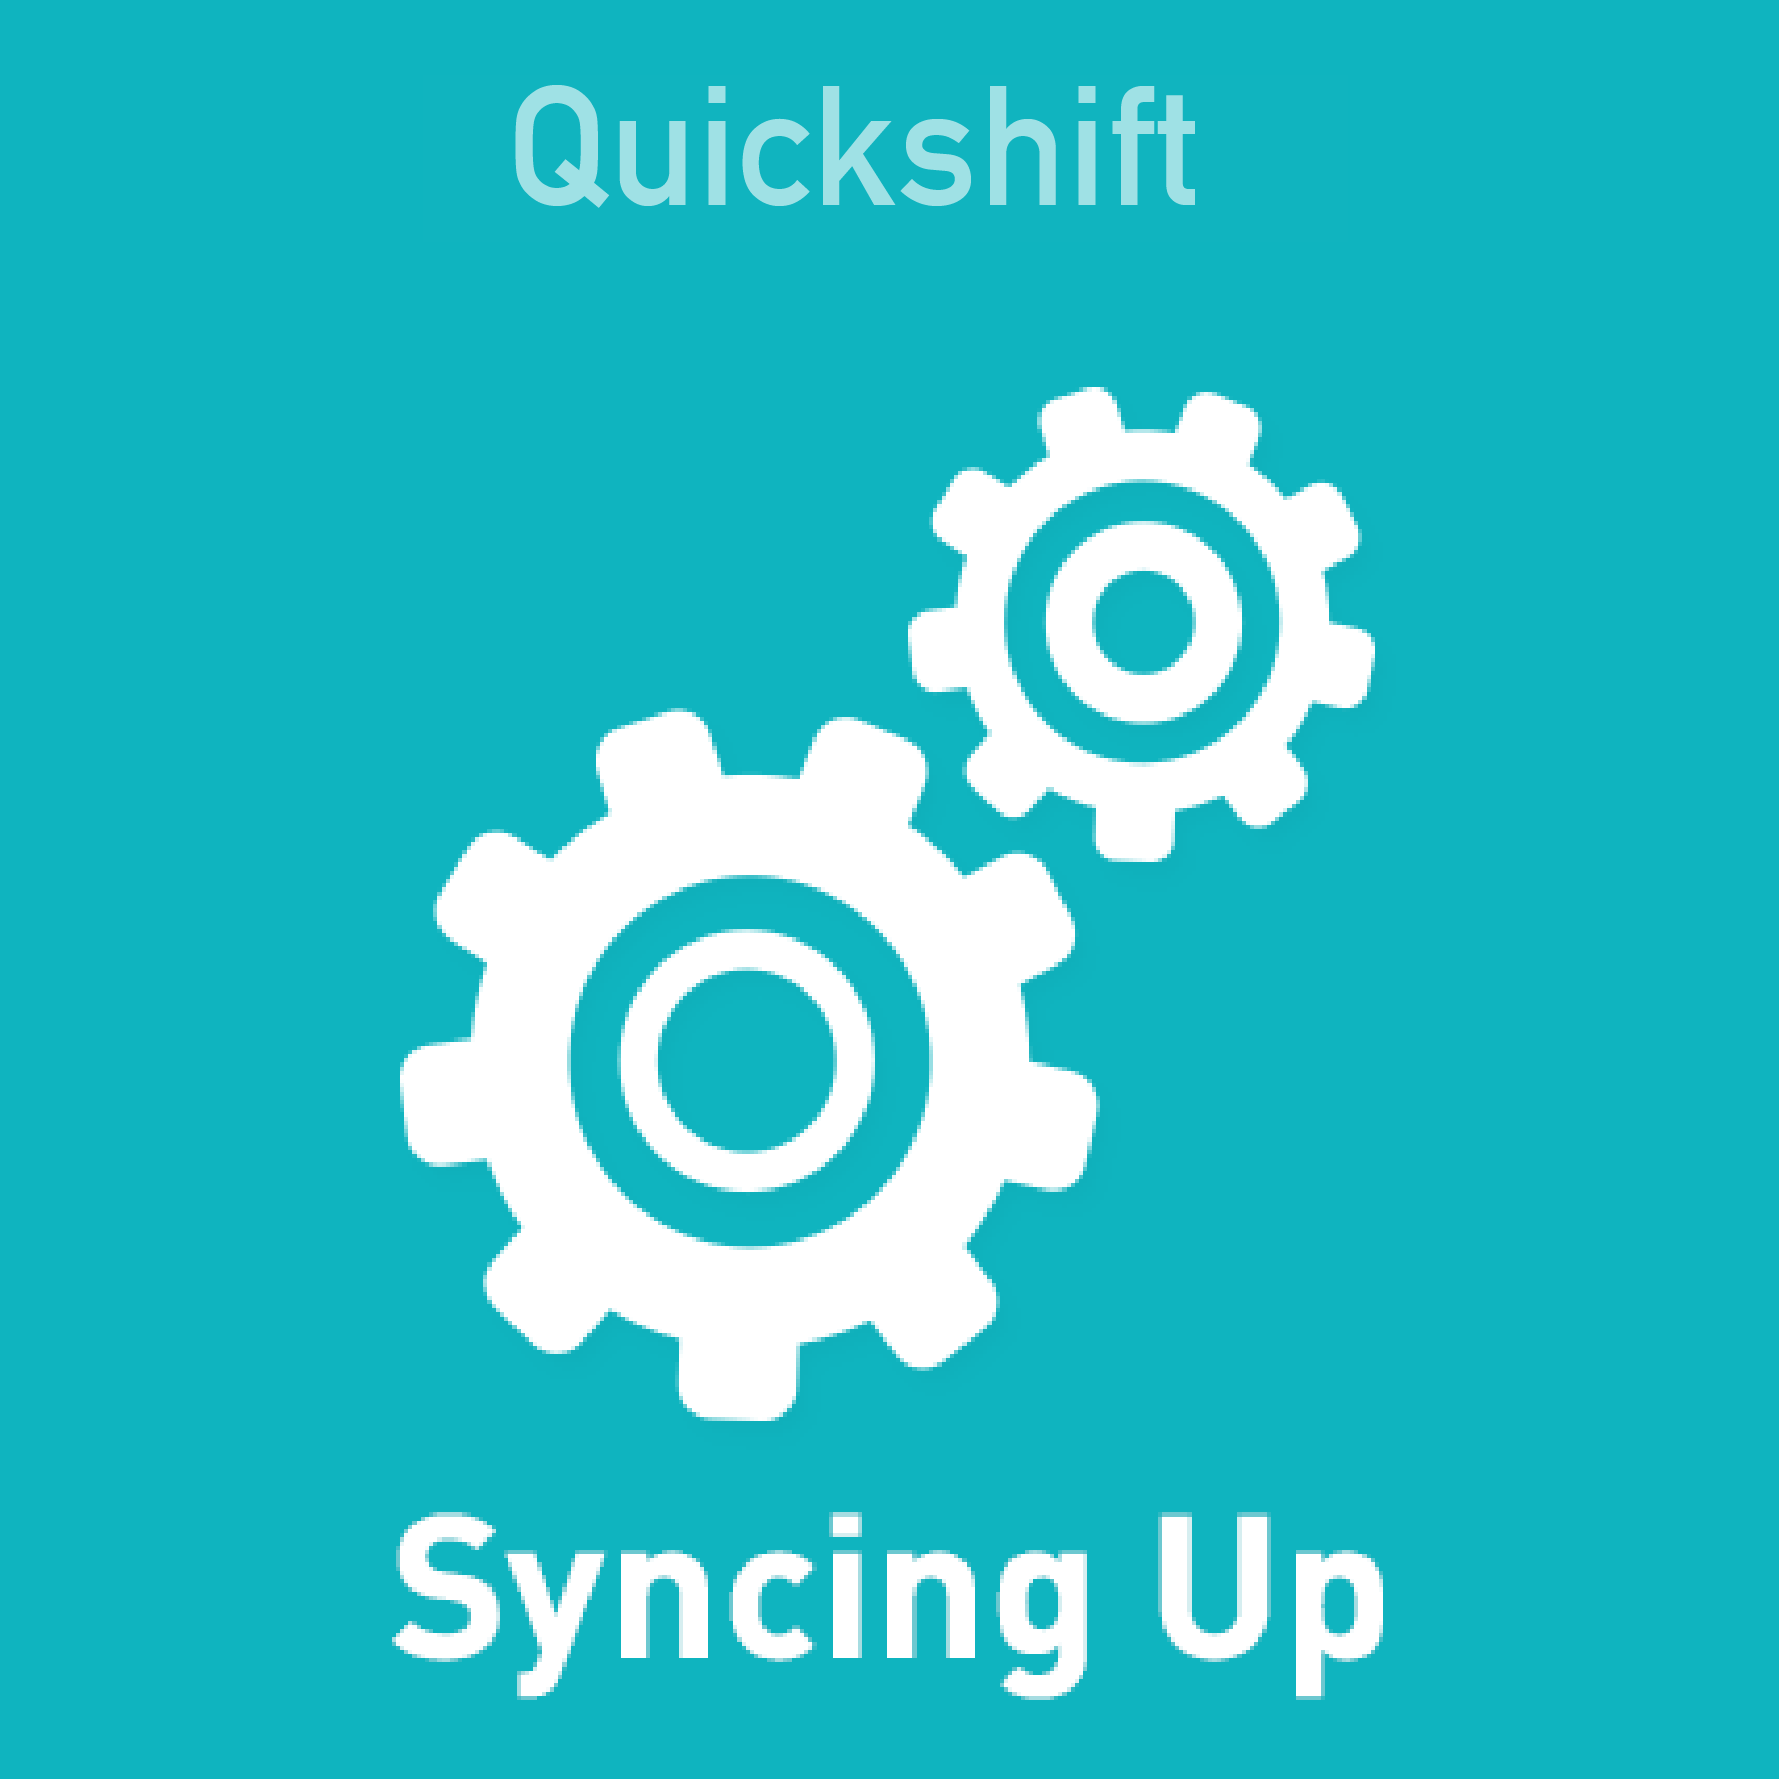 Quickshift - Syncing Up